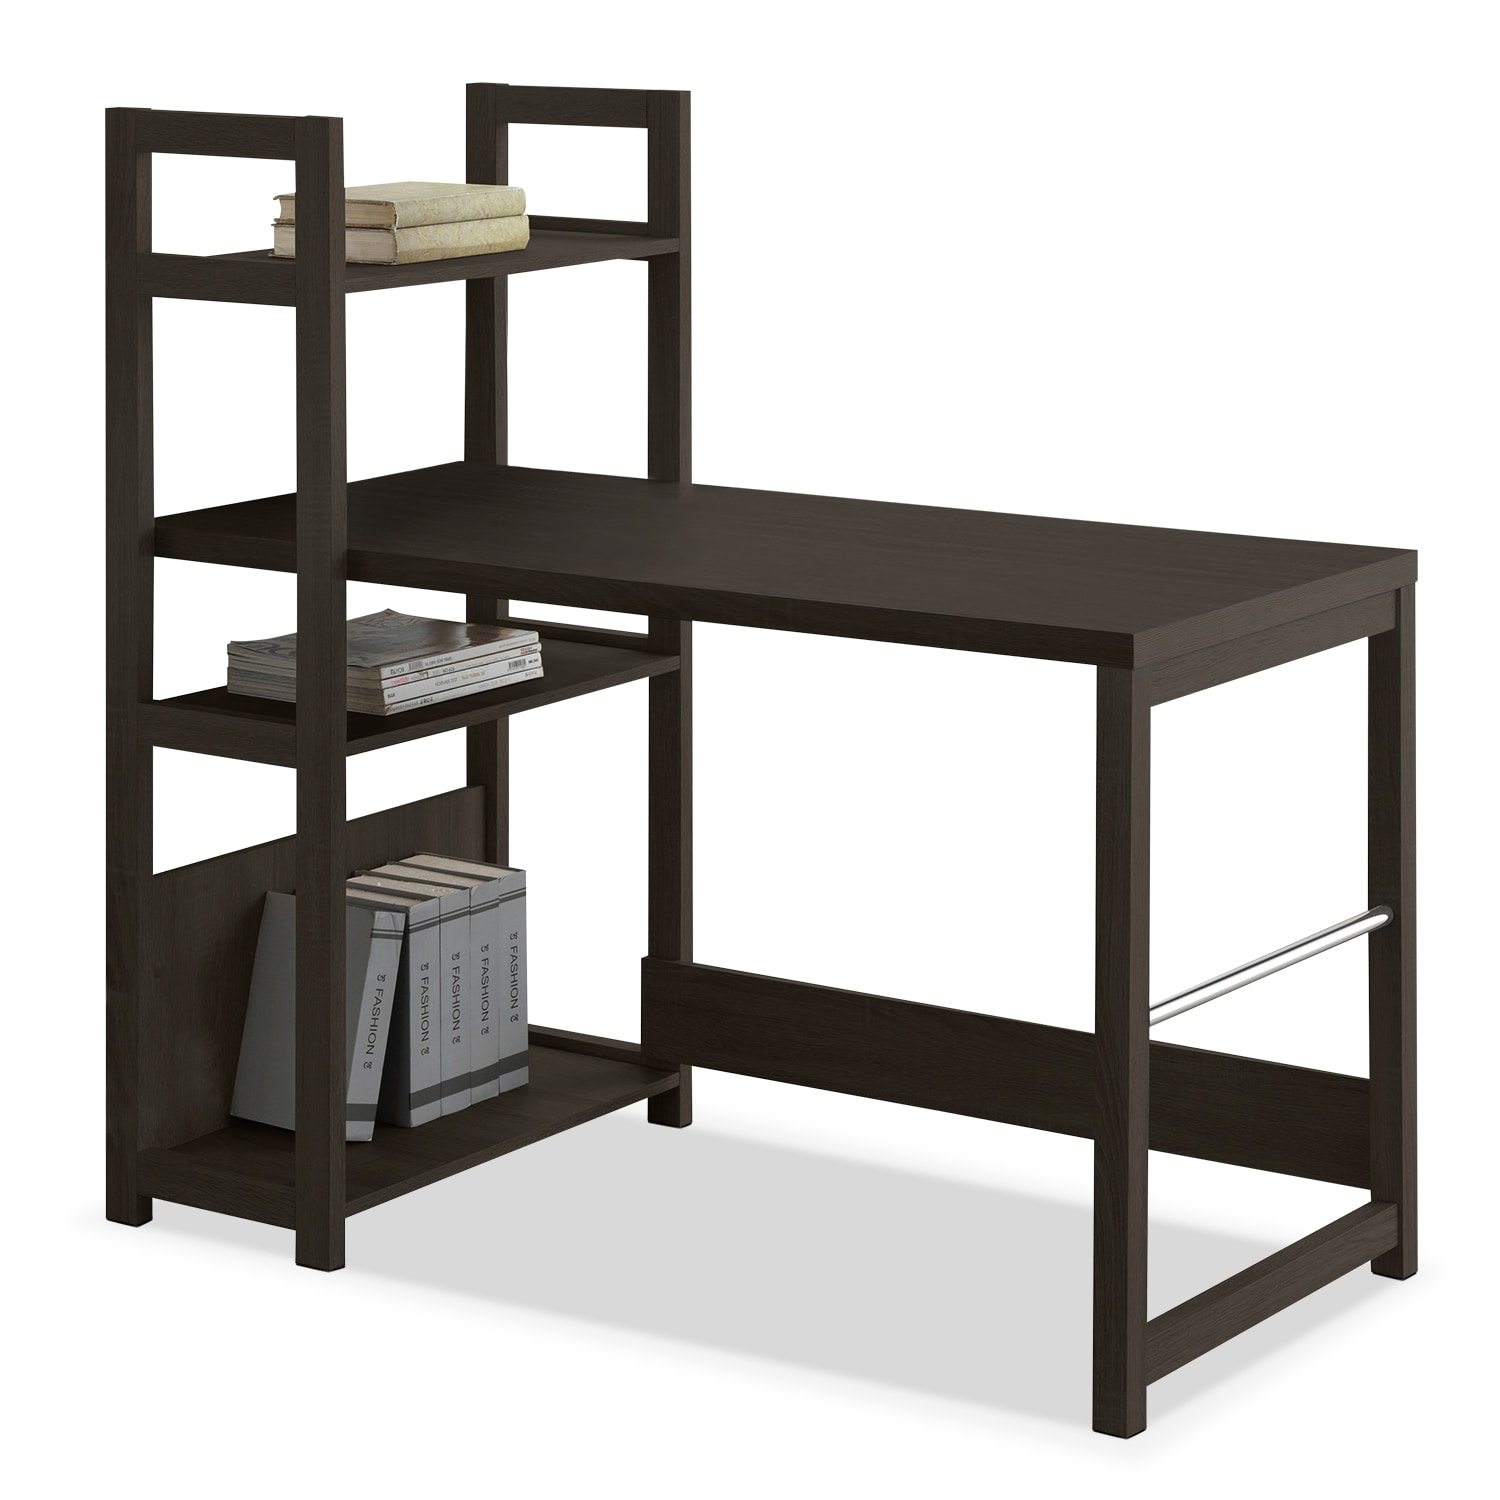 Home Office Furniture - Folio Bookshelf Desk